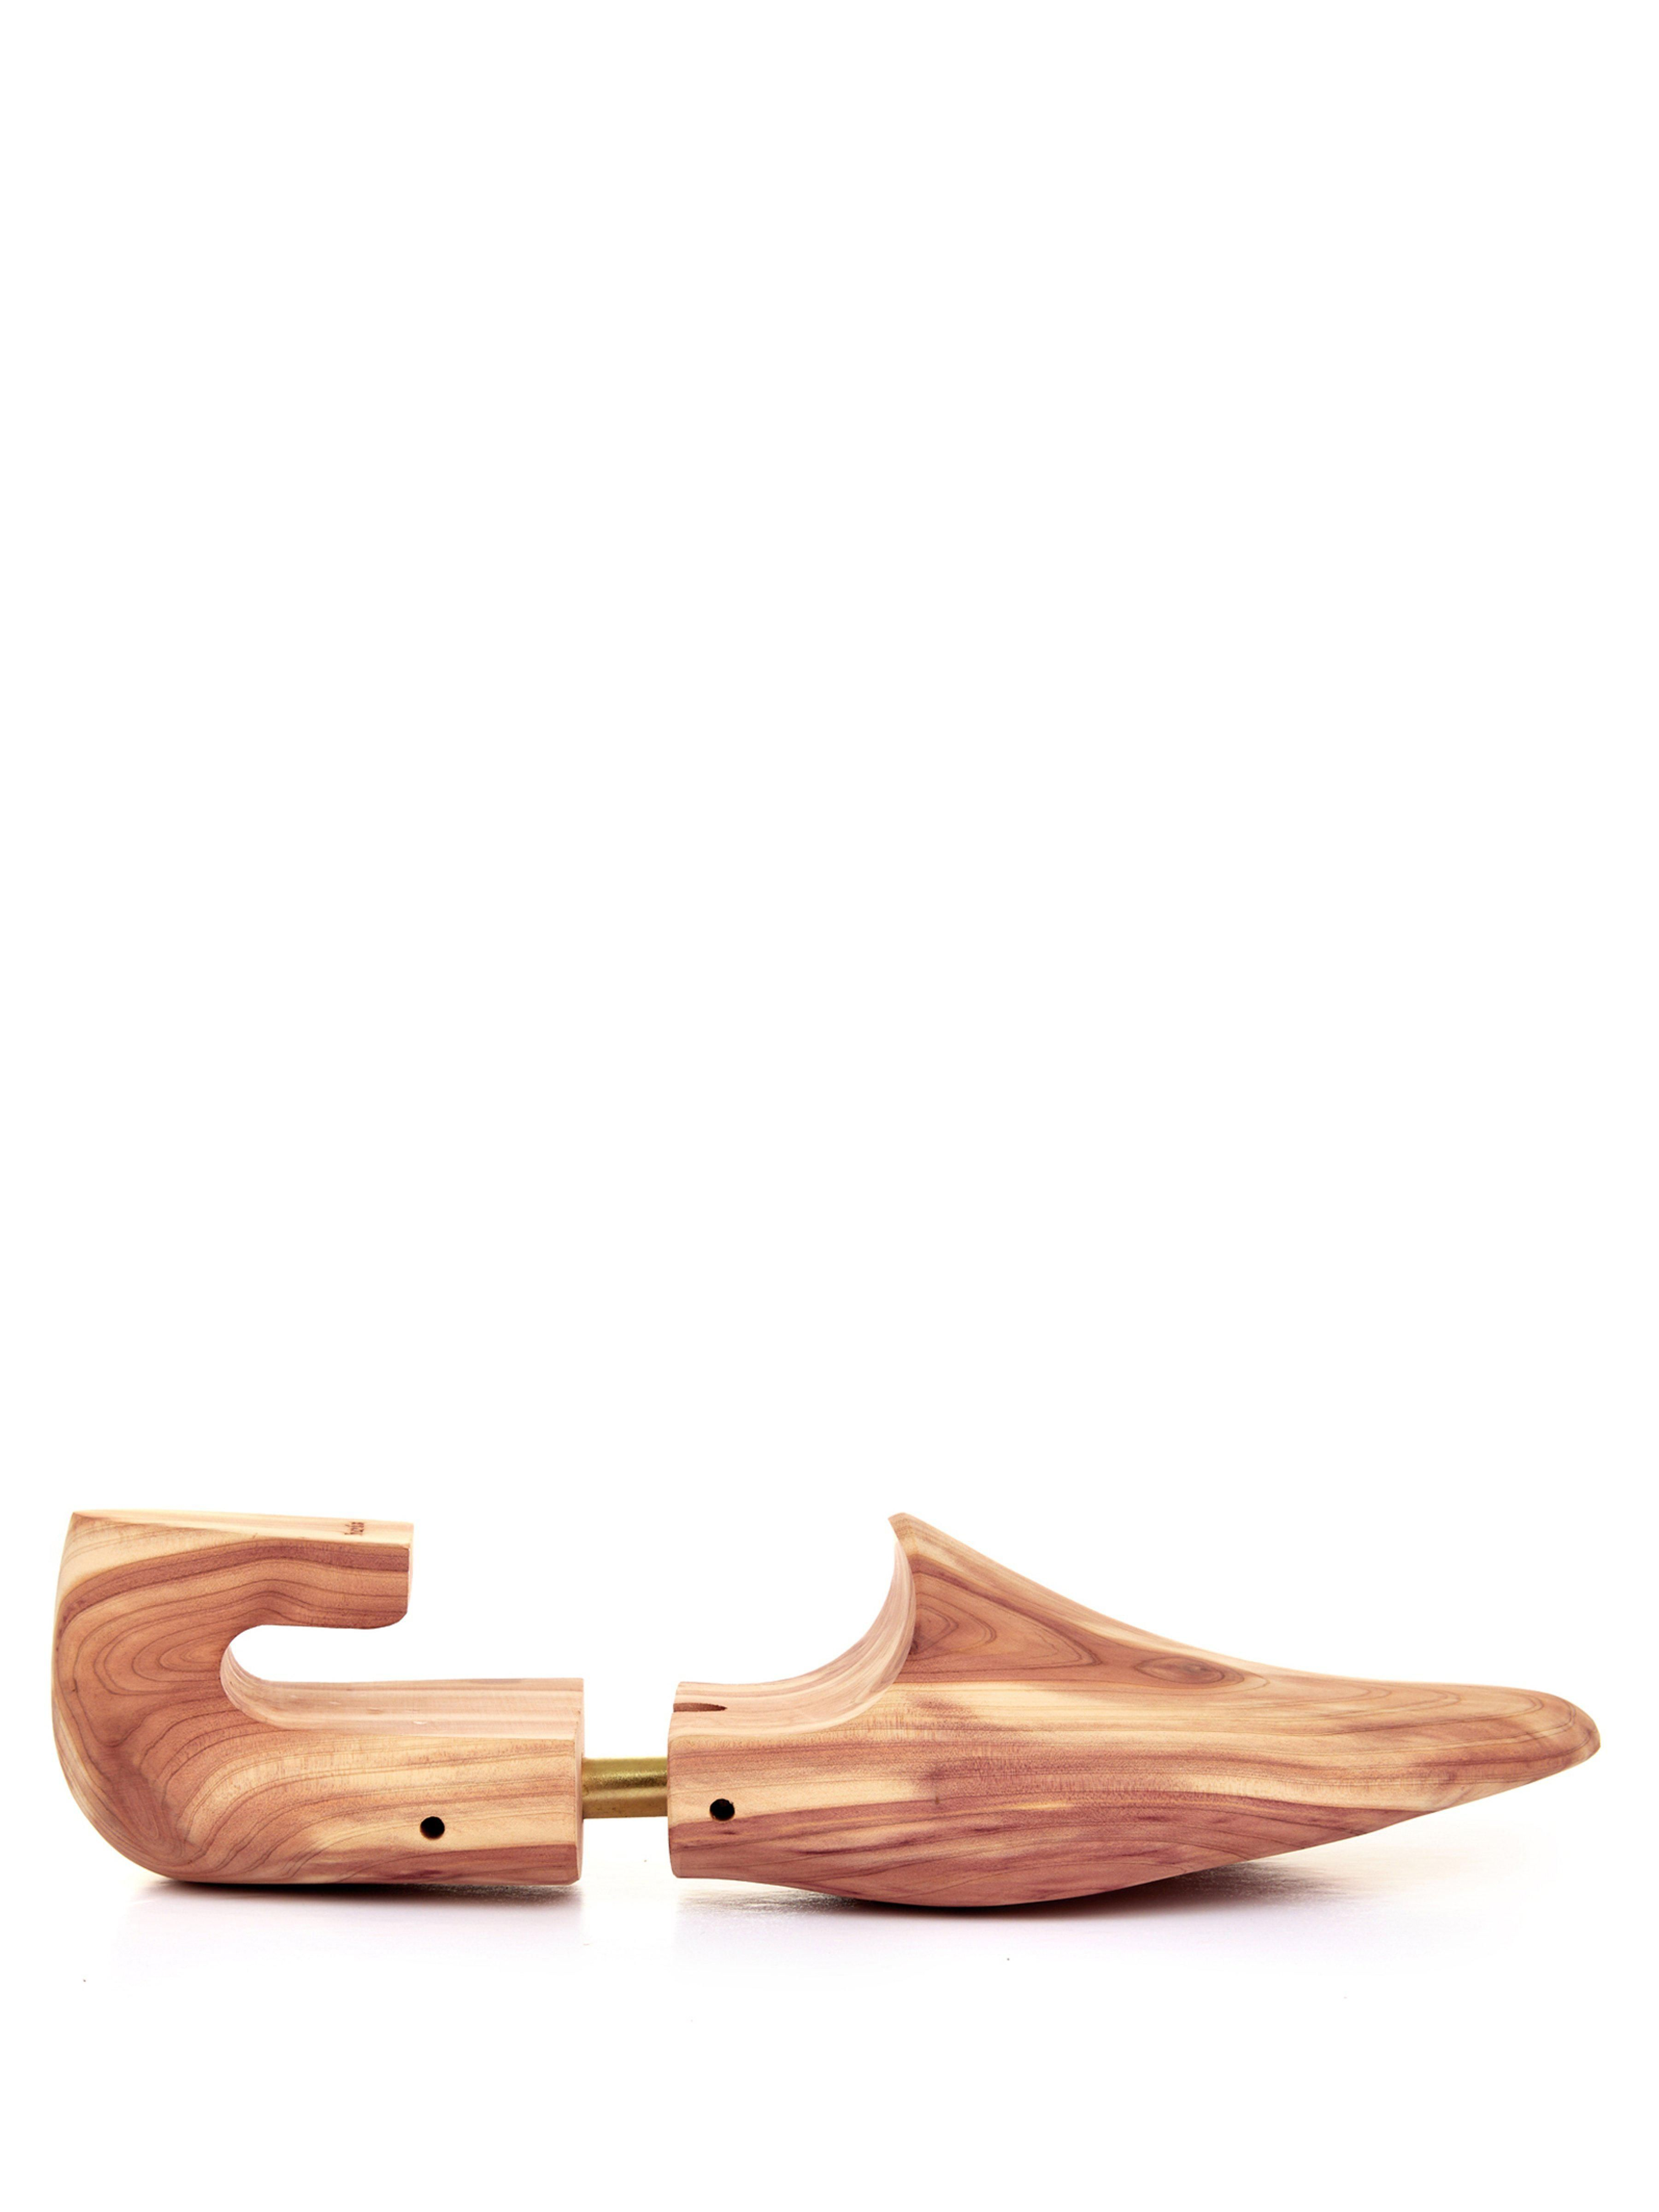 Churchs brown wessex wood and metal shoe trees for men